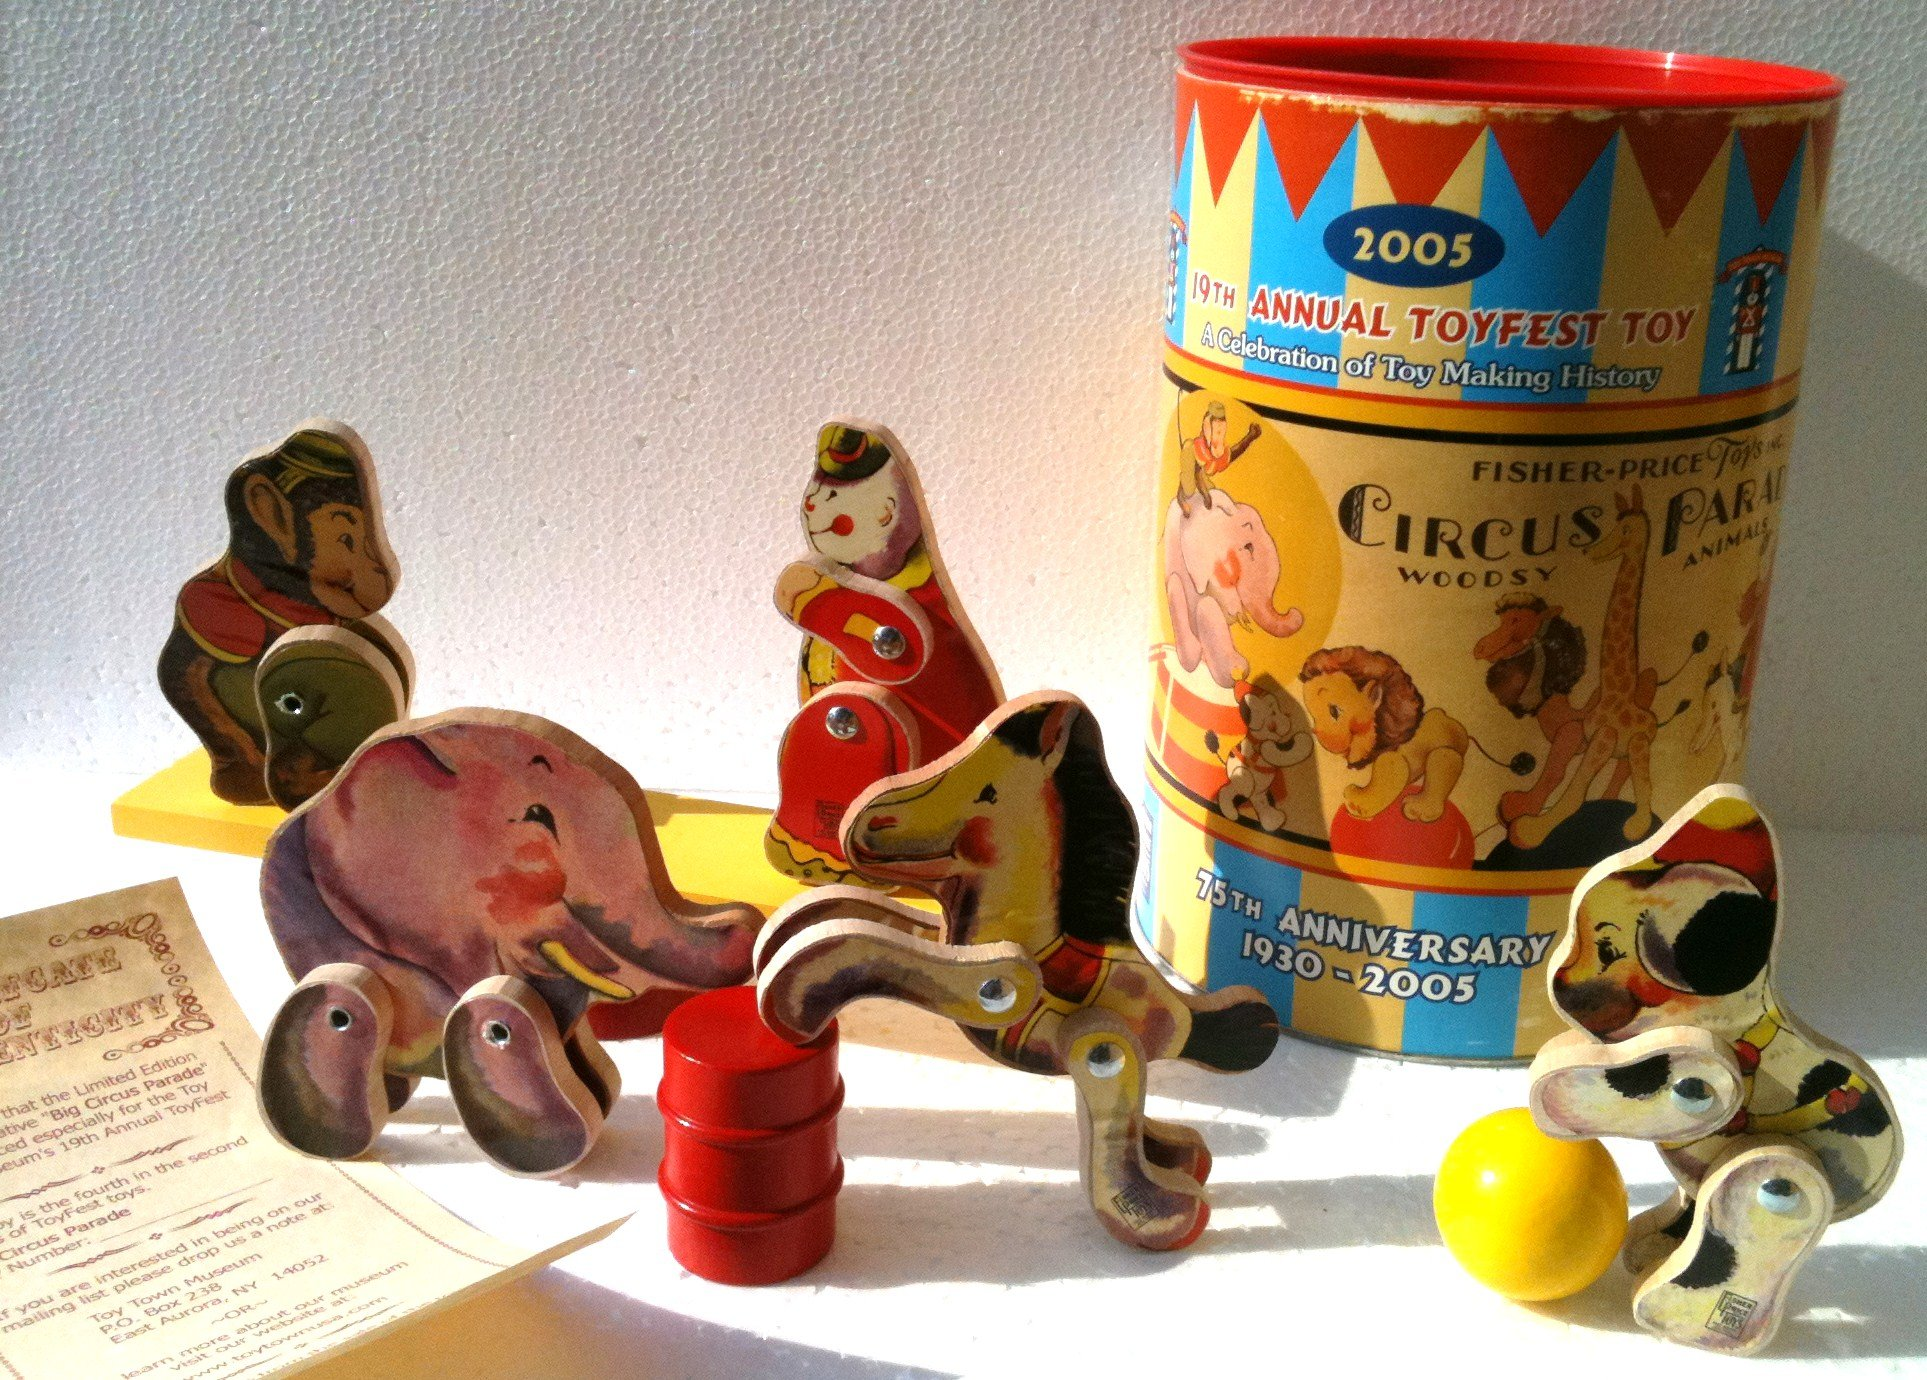 FISHER PRICE Wooden Toys BIG PERFORMING CIRCUS PARADE from 2005 Toyfest LIMITED EDITION Collectible 10 Piece Set (9'' Tall)